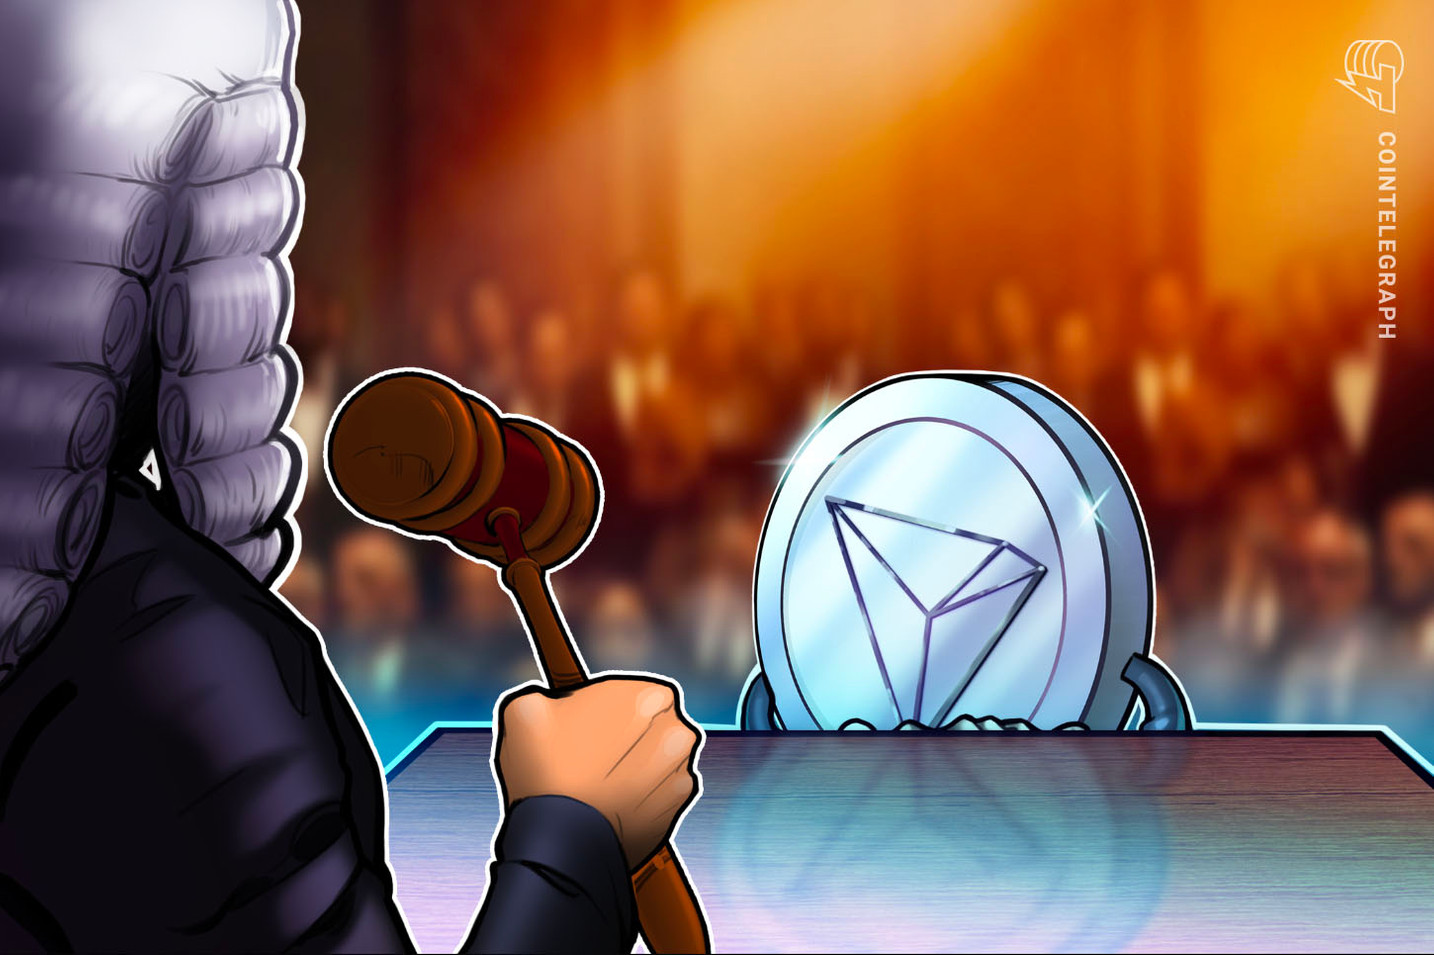 Tron asks NY judge to turf ICO suit from Binance bag holders